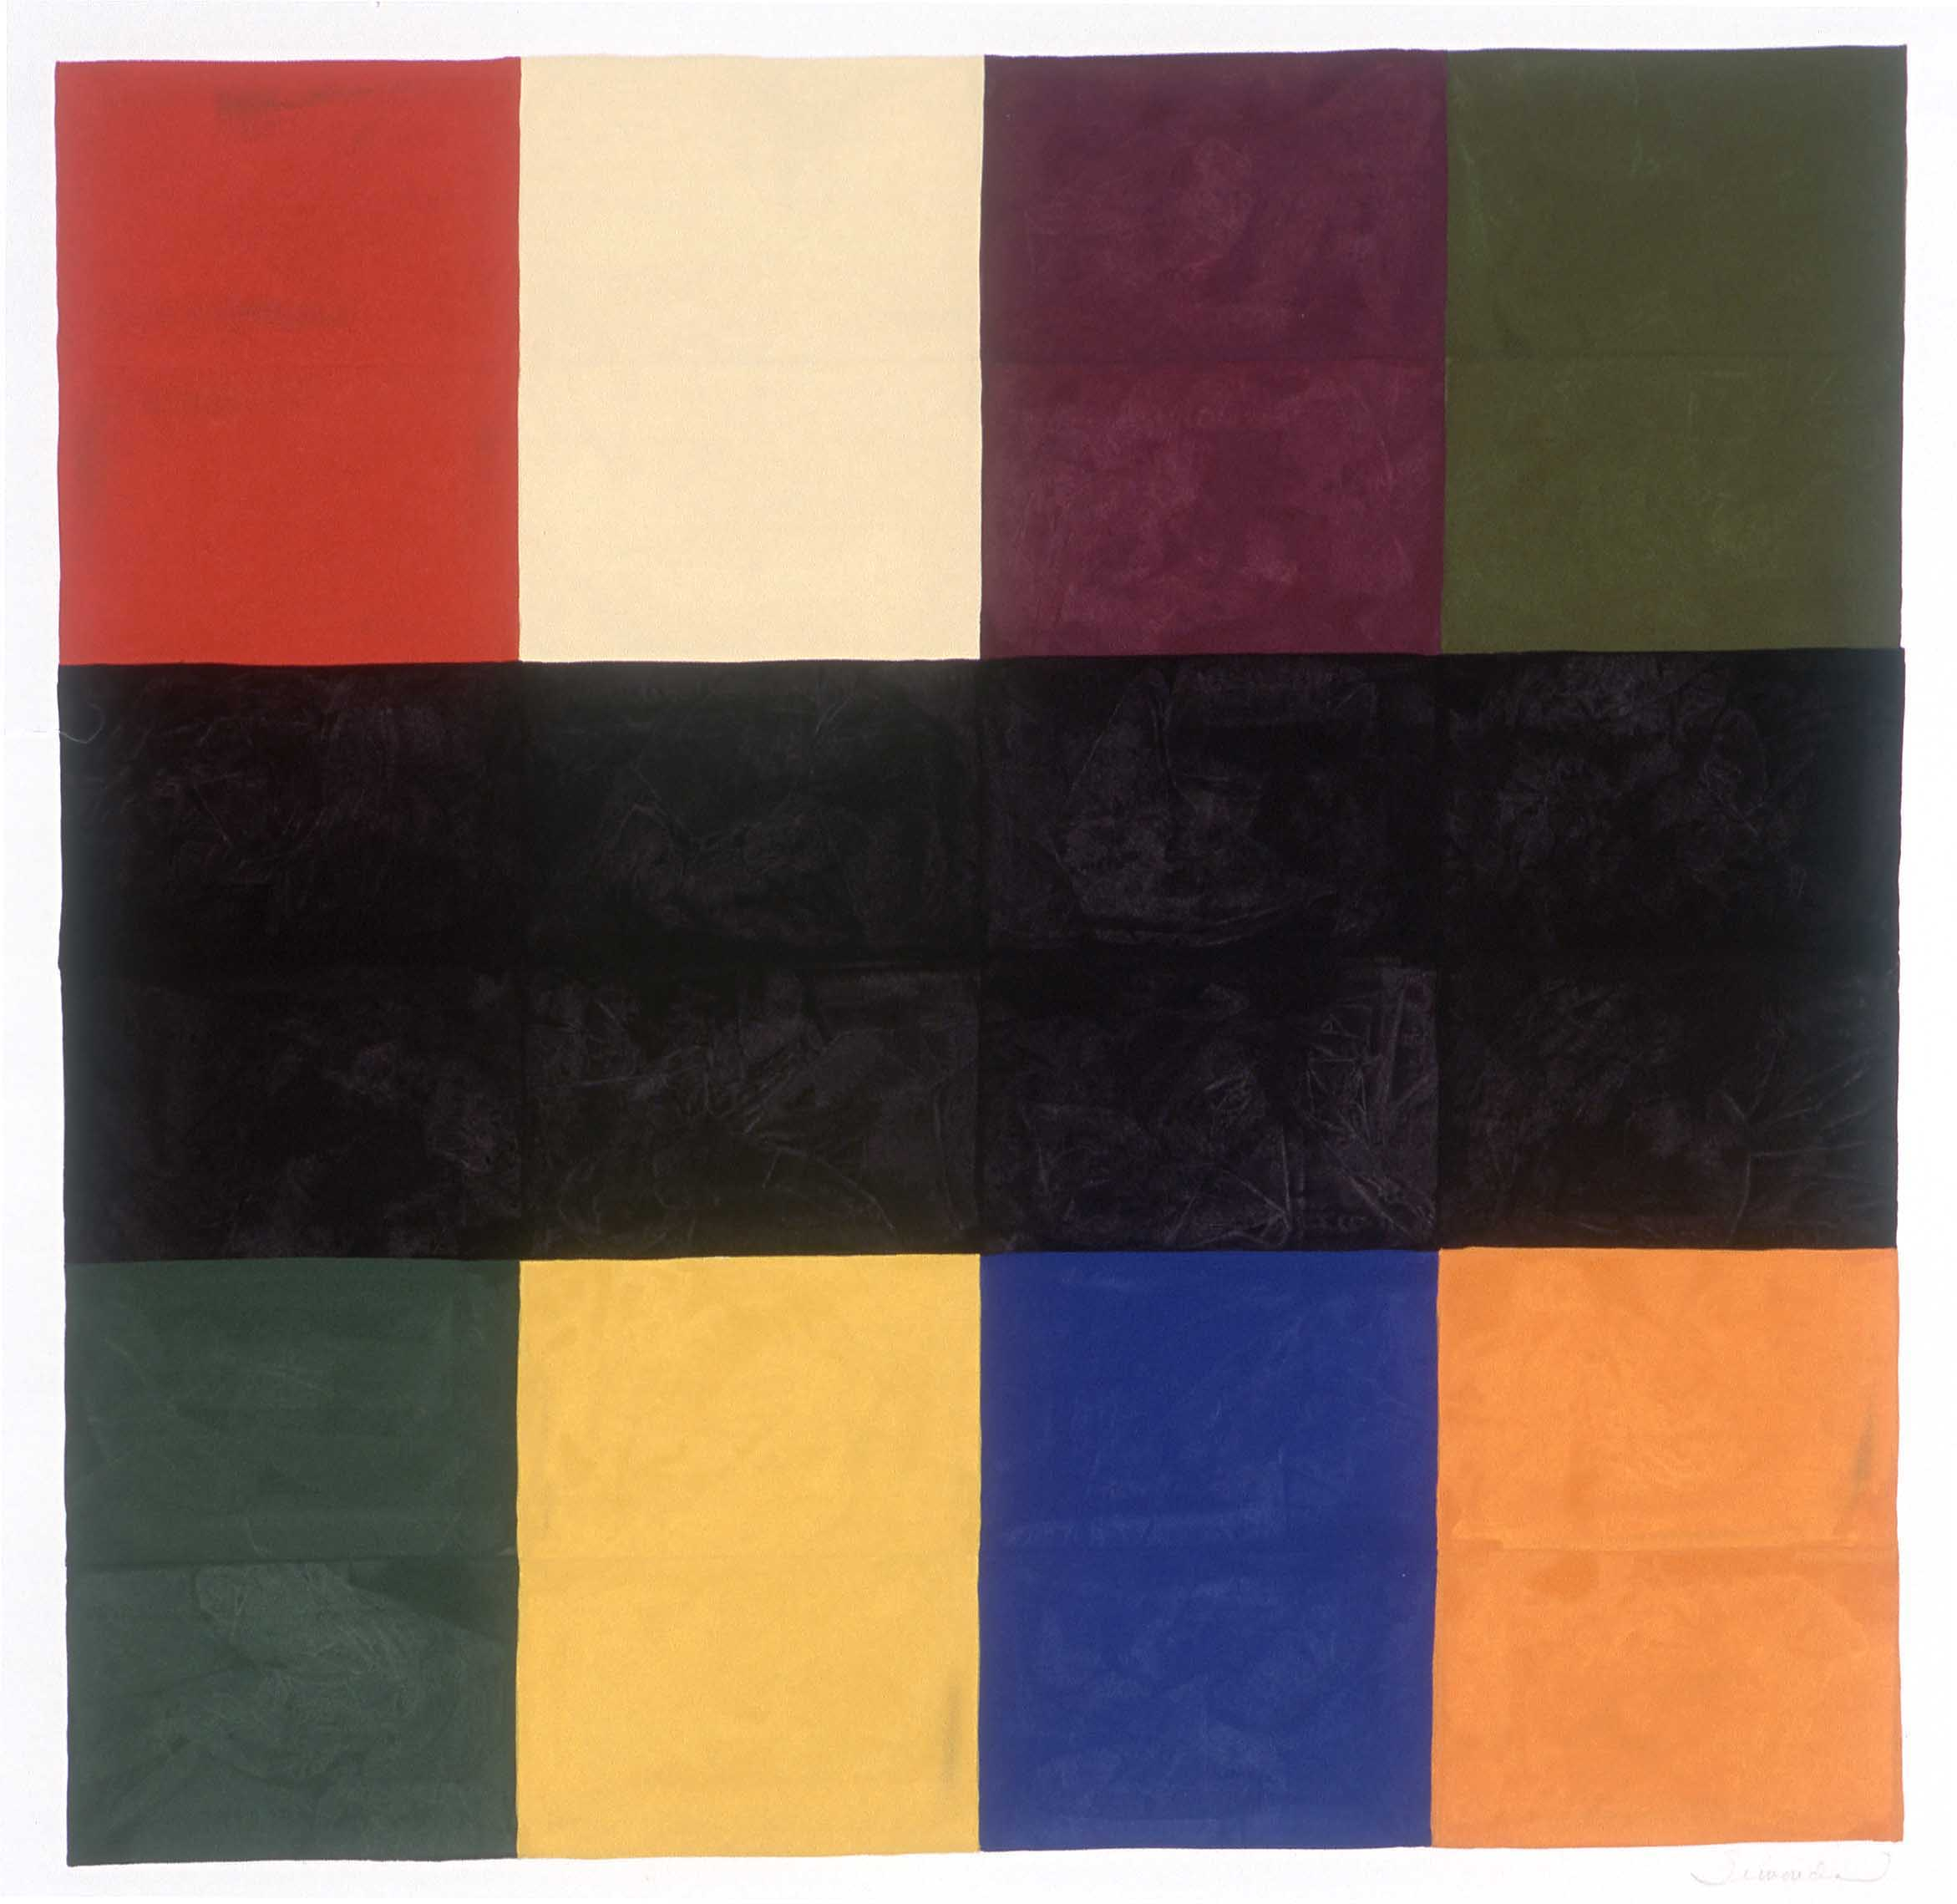 NANCY SIMONDS  Black Bar Bisect  gouache on paper, 42 x 42 inches